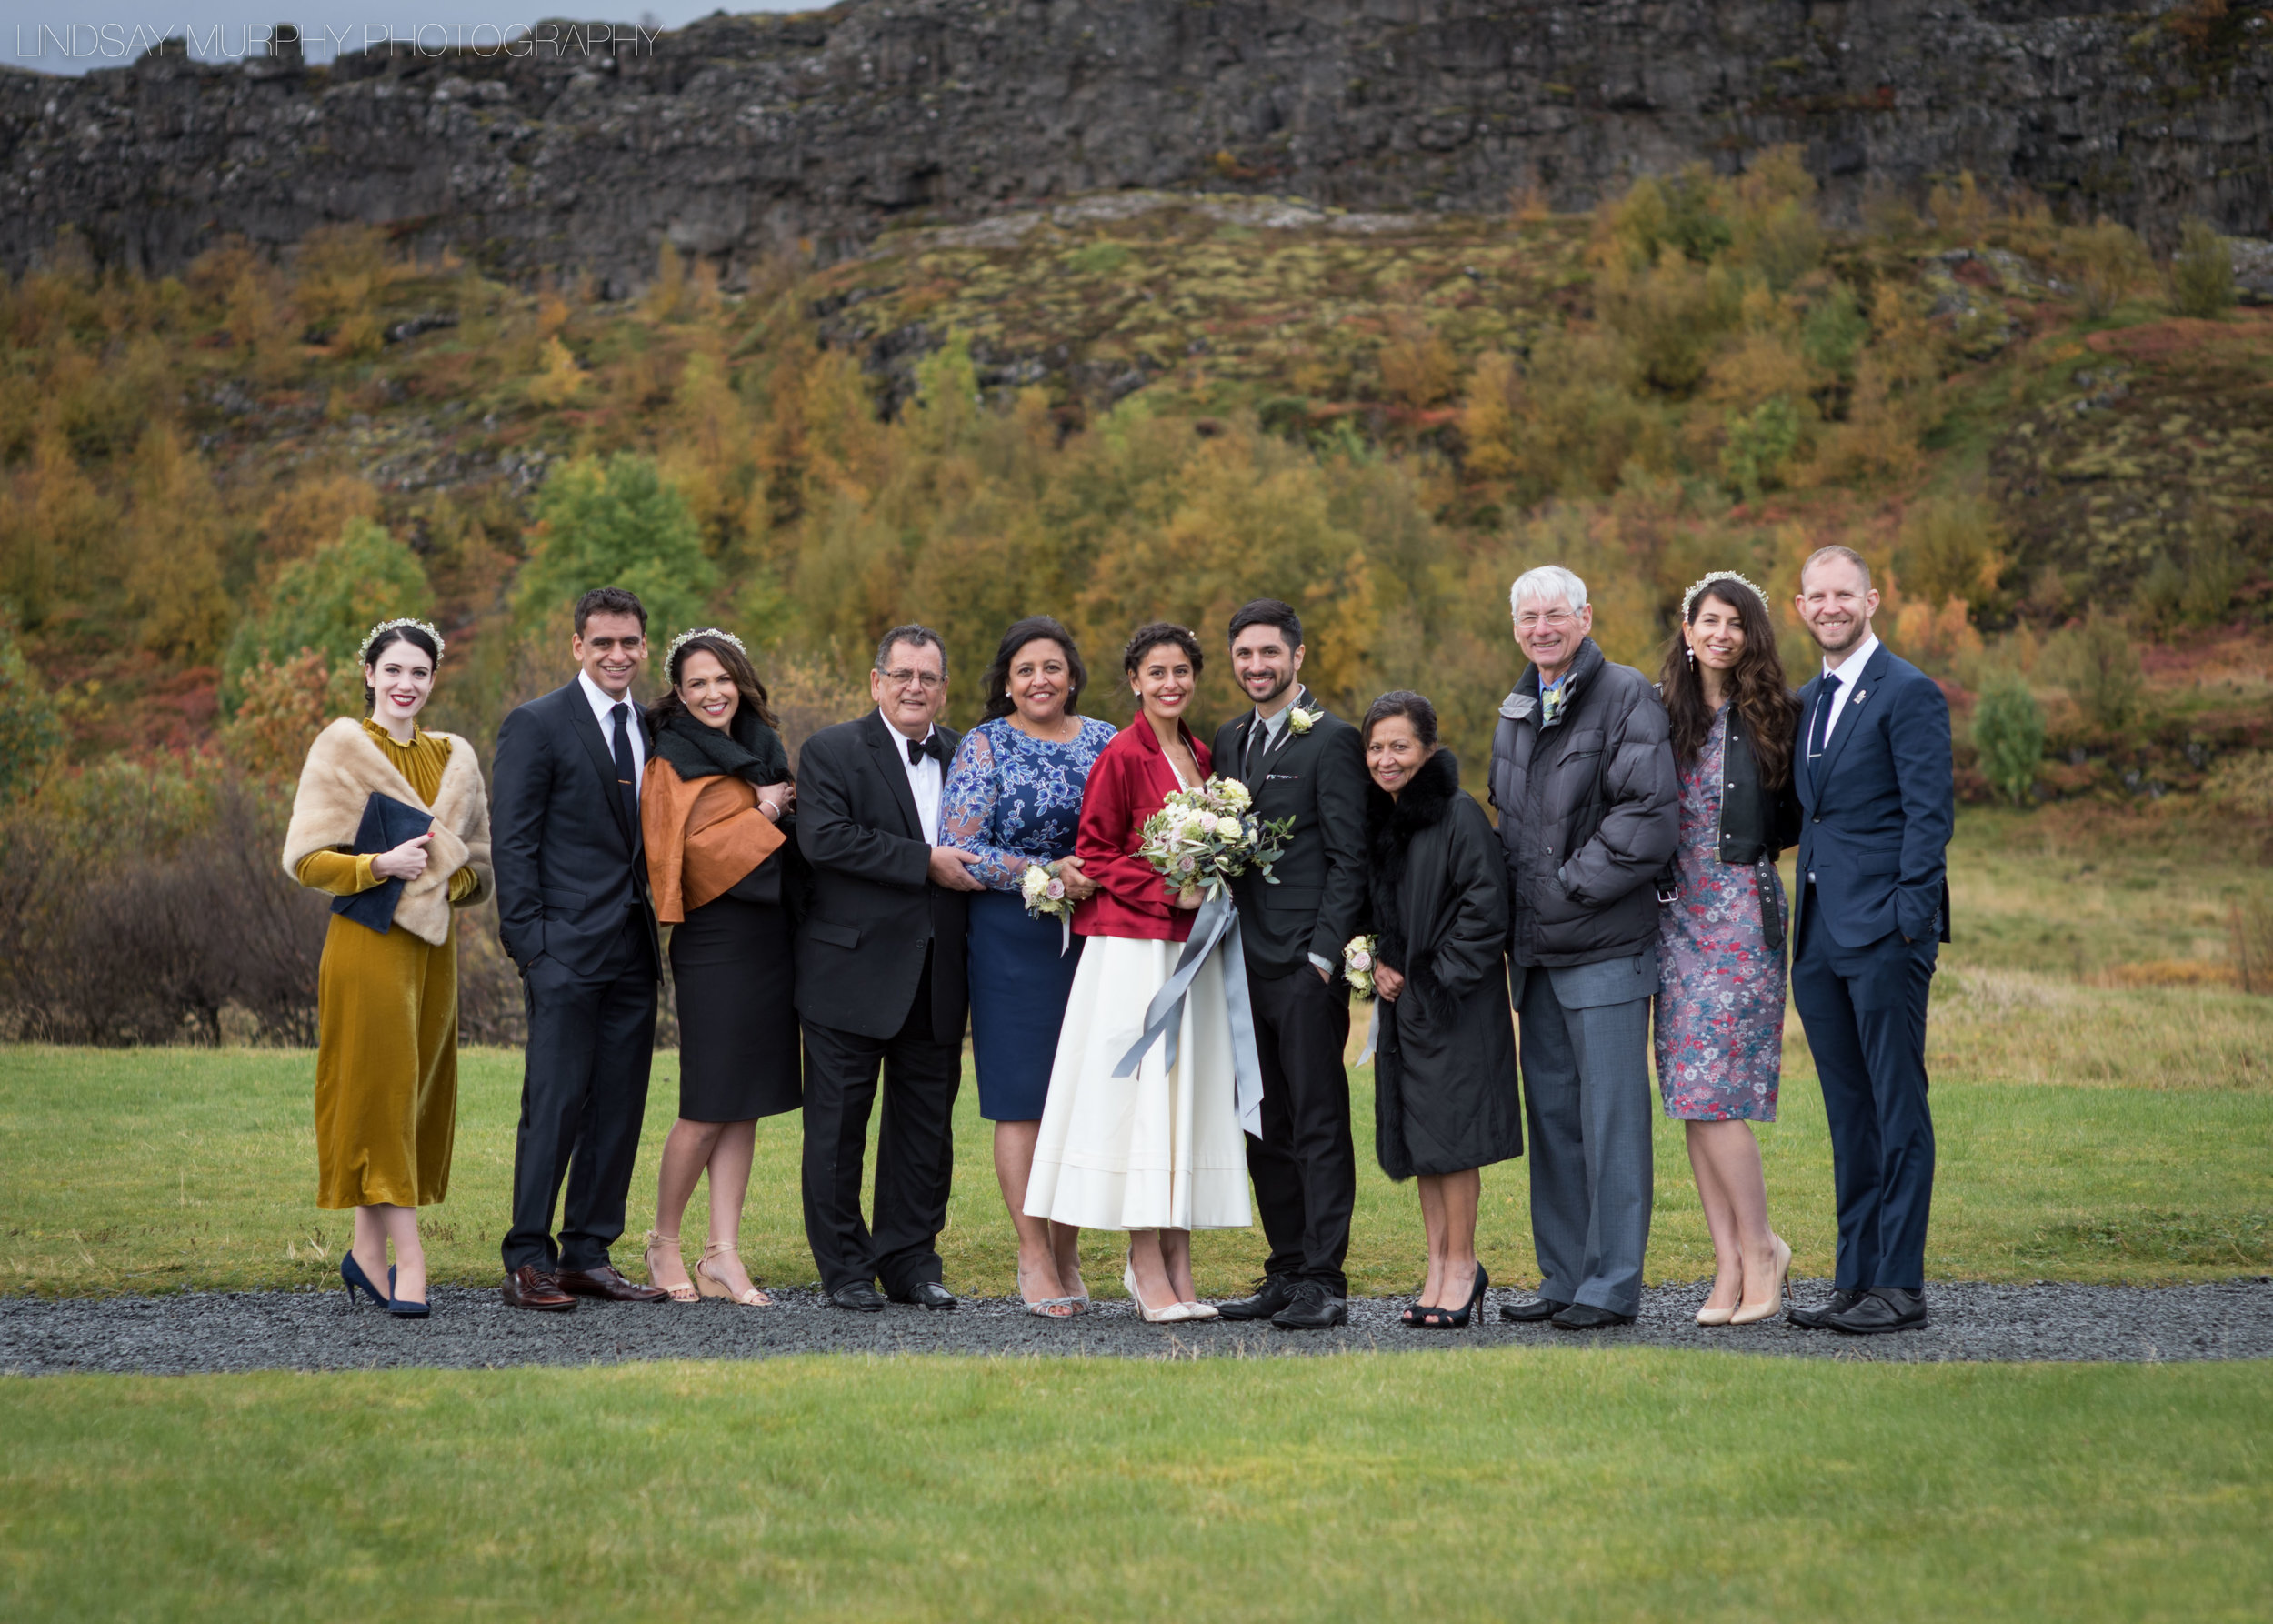 Destination_Iceland_Adventure_Wedding-274.jpg